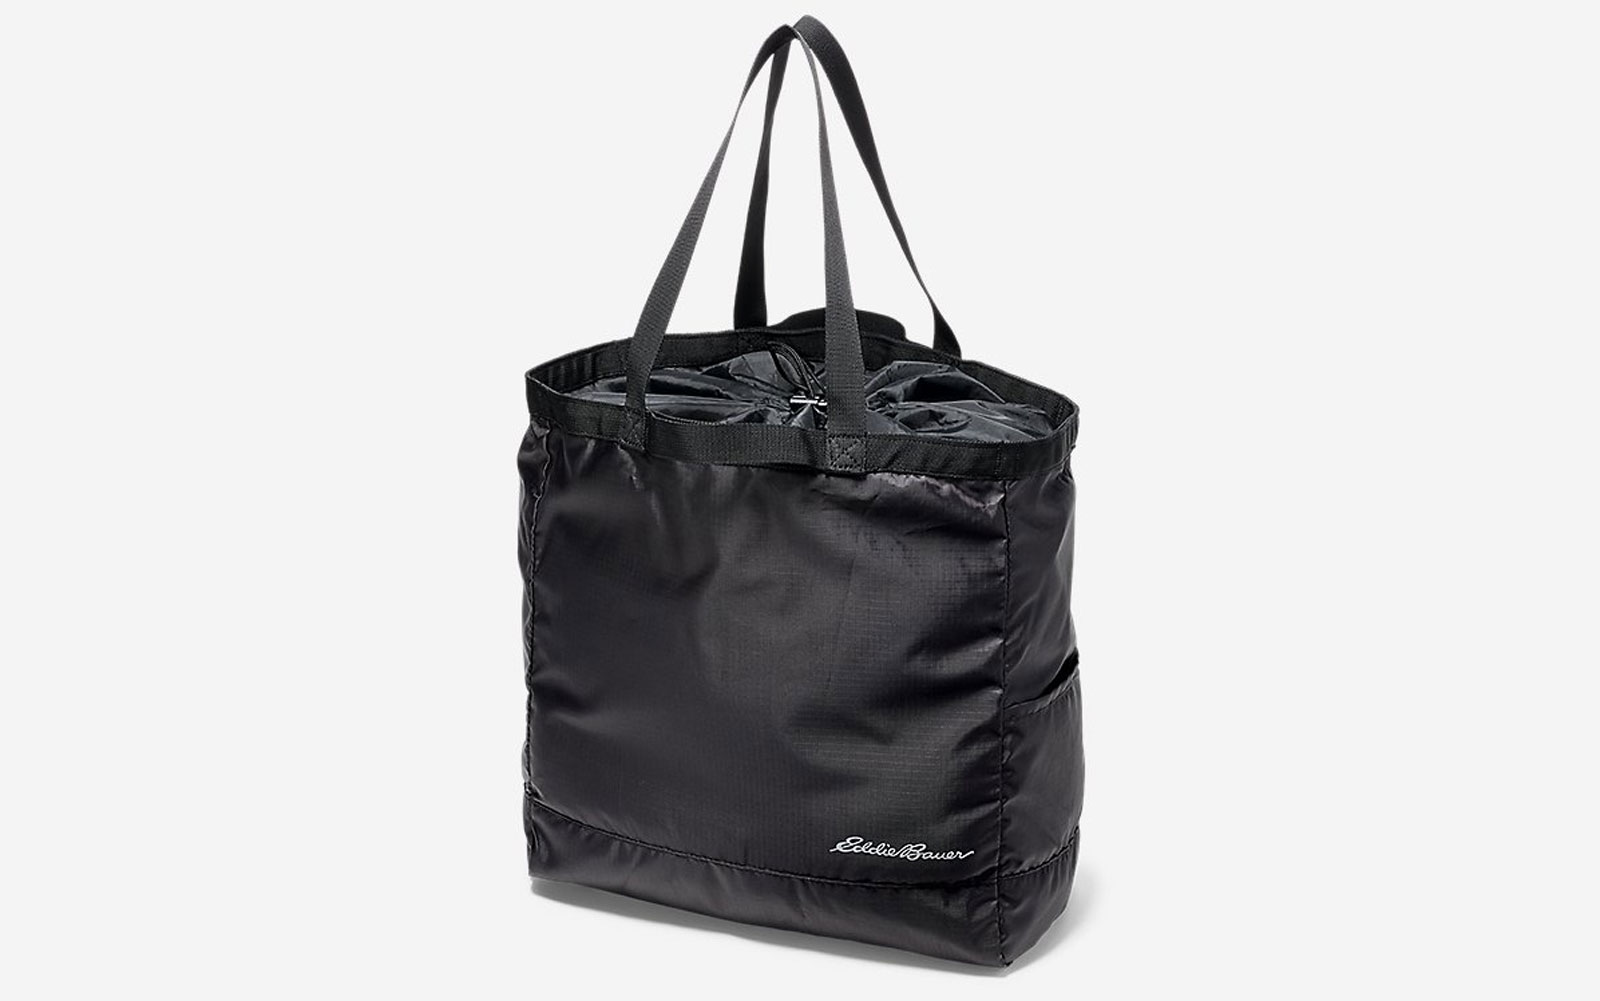 Black cinch shopping tote